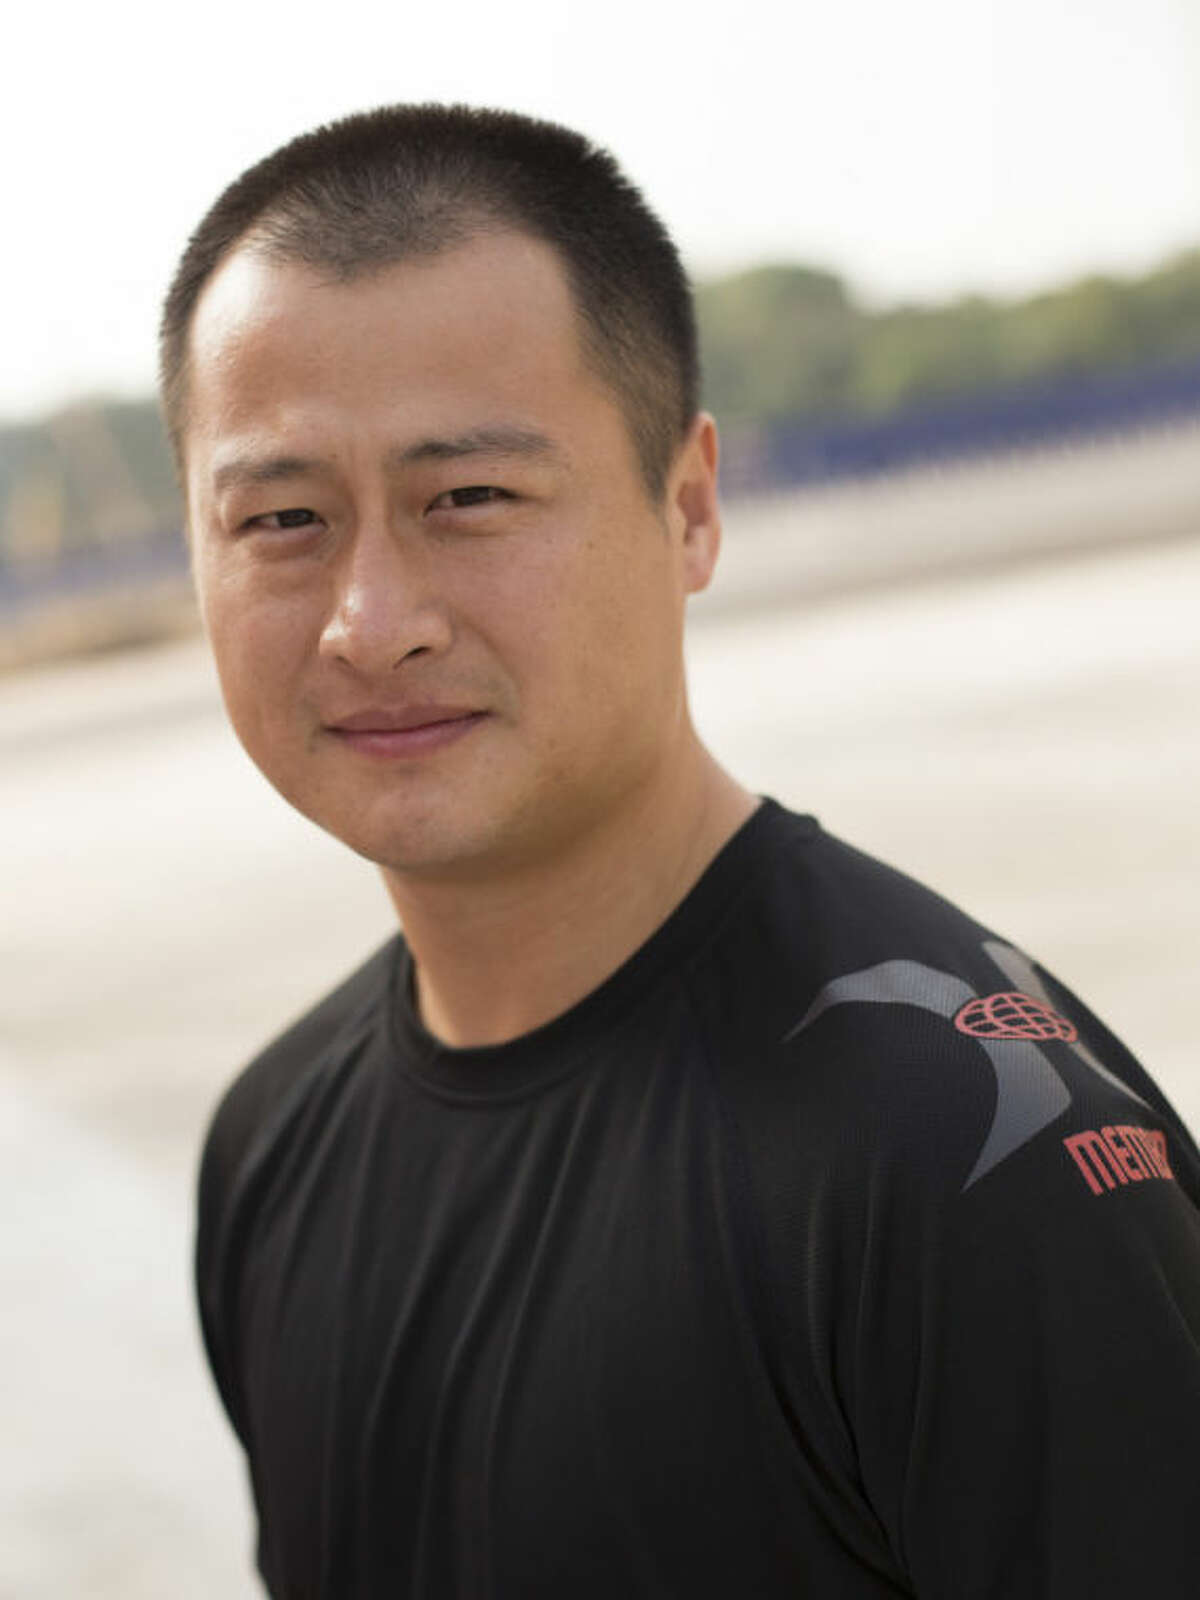 """This undated photo provided by Brian Ho, shows stunt man Ju Kun on the back lot of the new Pinewood Studios in Johor Bahru, Malaysia. Ju Kun, whose credits include the acclaimed martial arts epic """"The Grandmaster,"""" was among the passengers on the Malaysia Airlines plane that disappeared early Saturday, March 8, 2014. Ju Kun was scheduled to work on the series pilot for ?""""Marco Polo,?"""" a joint Weinstein Co. and Netflix production, at the studio in Malaysia before he boarded the flight to return home to Beijing. (AP Photo/Brian Ho) NO SALES, NO ARCHIVES, MANDATORY CREDIT, ONE TIME USE ONLY"""